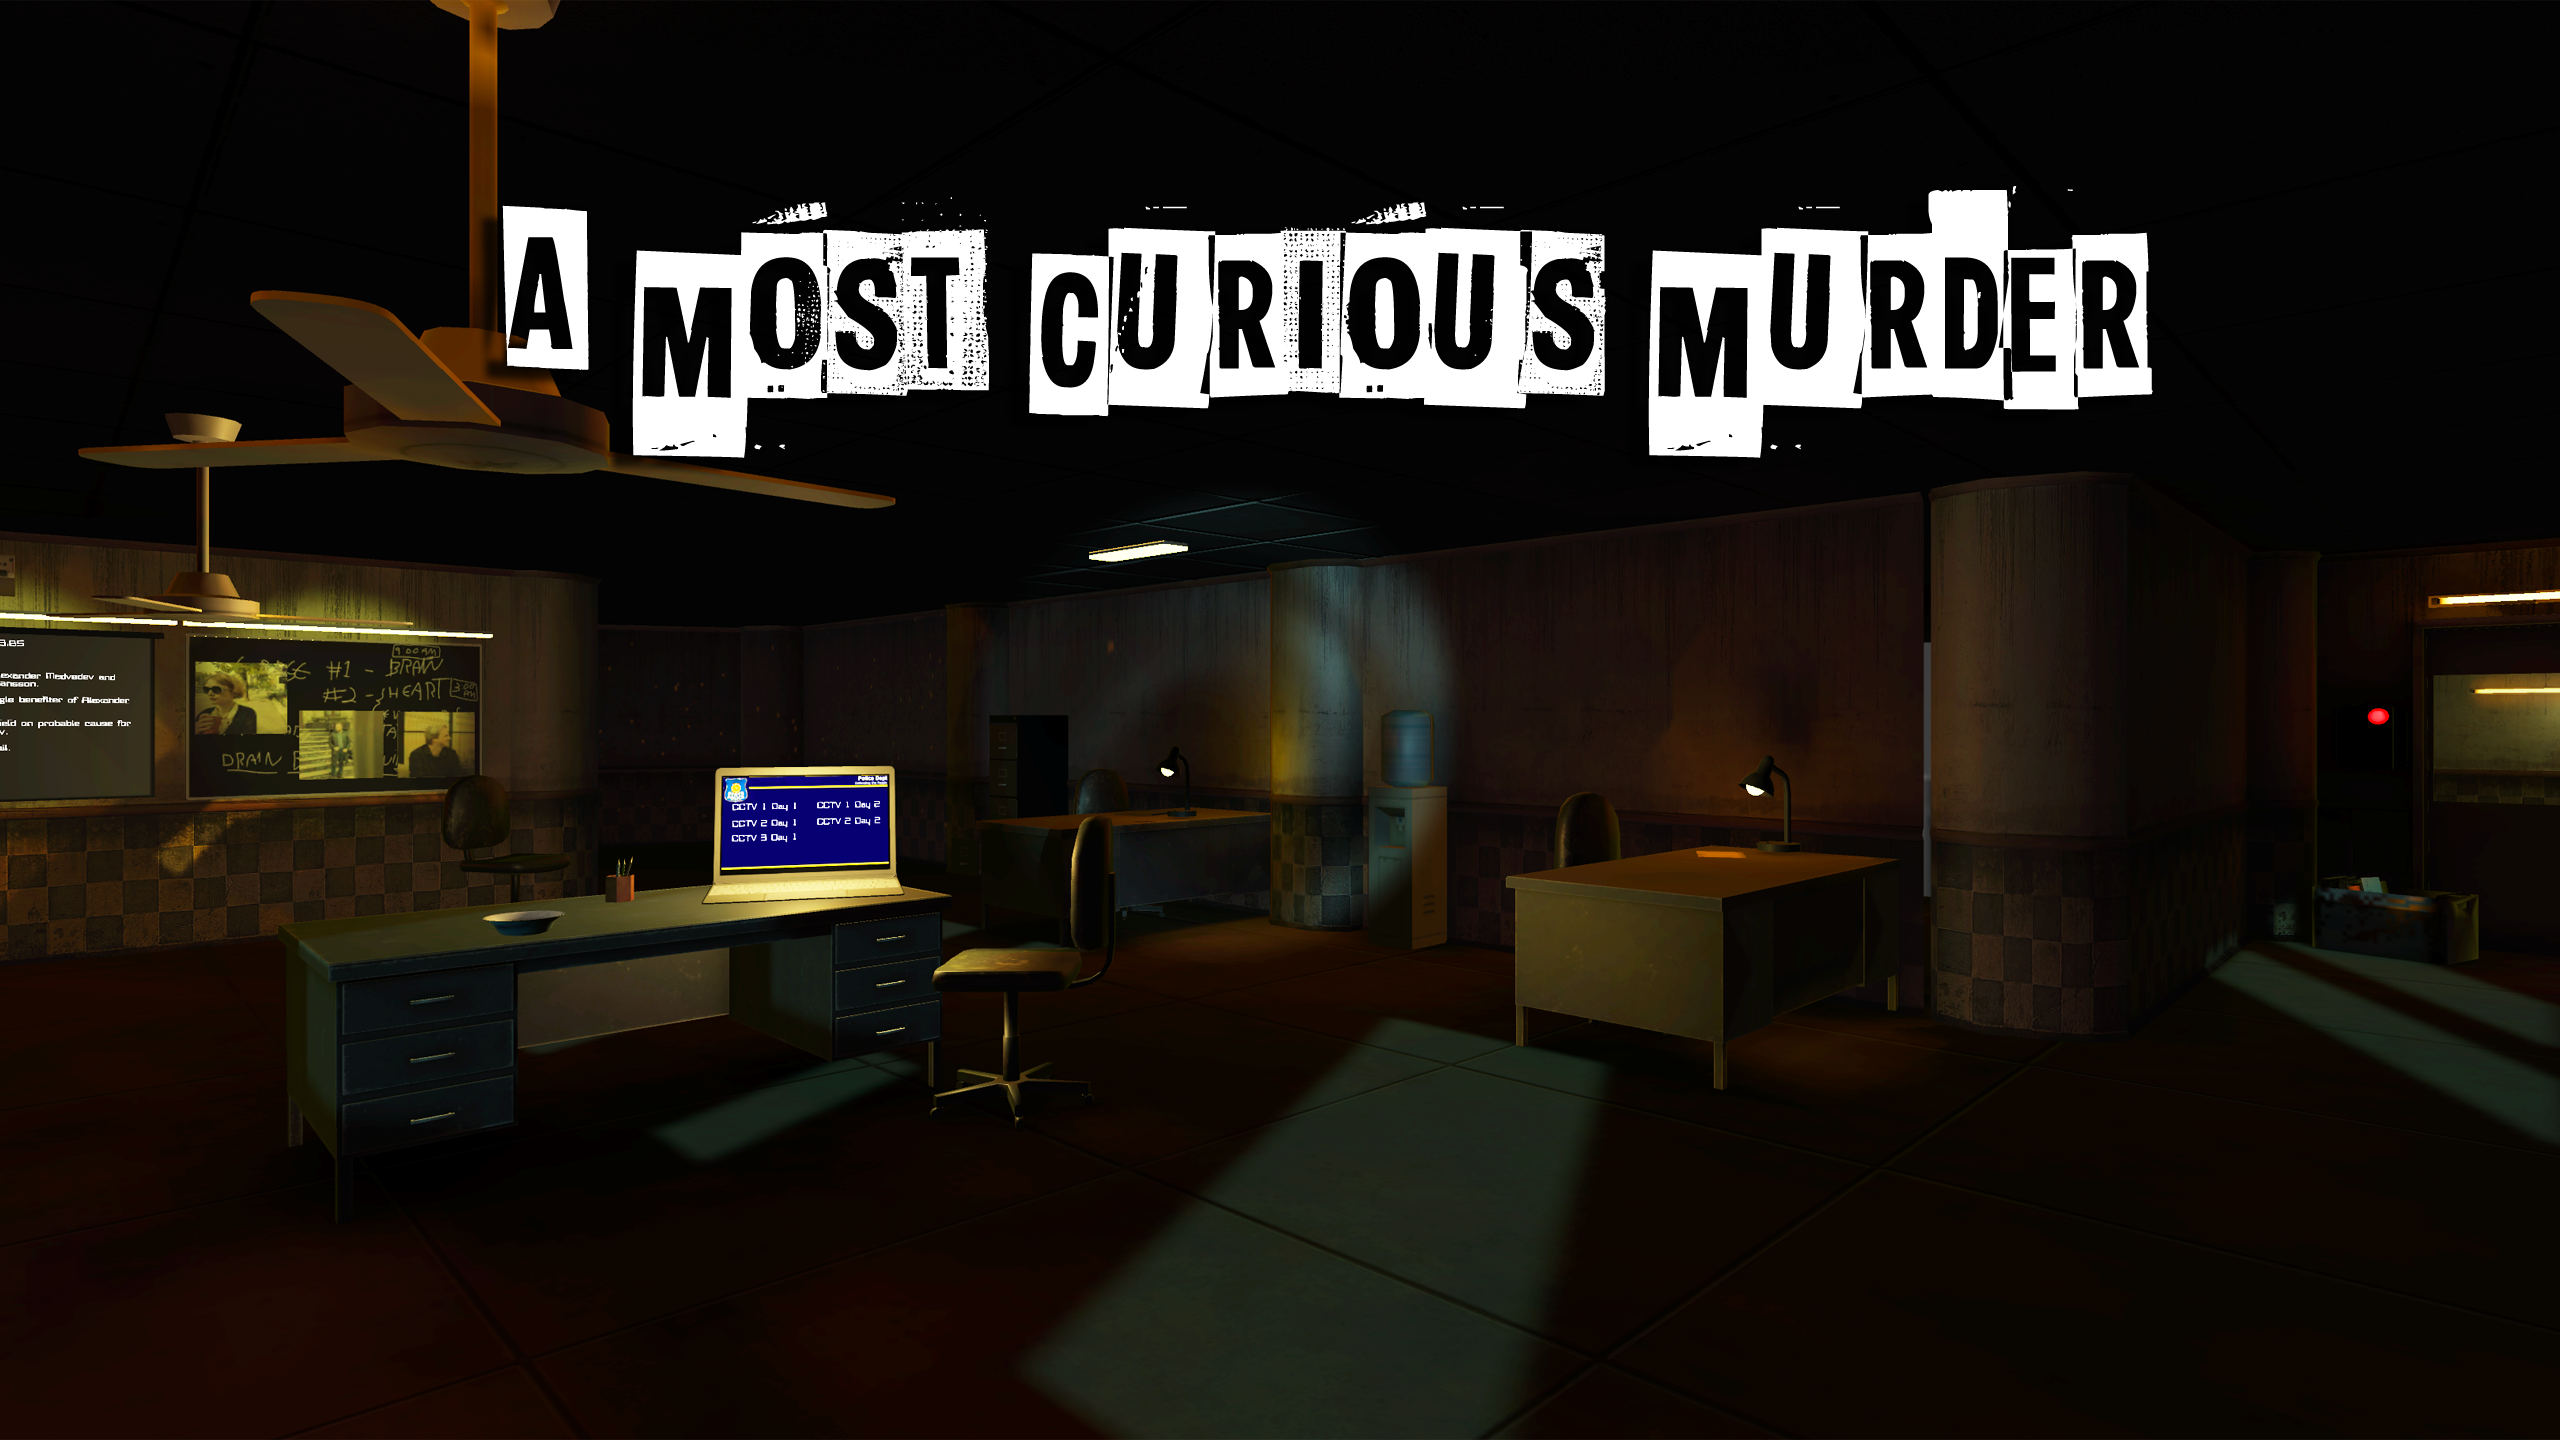 PGConnects: A Most Curious Murder is an immersive VR murder mystery for Gear VR